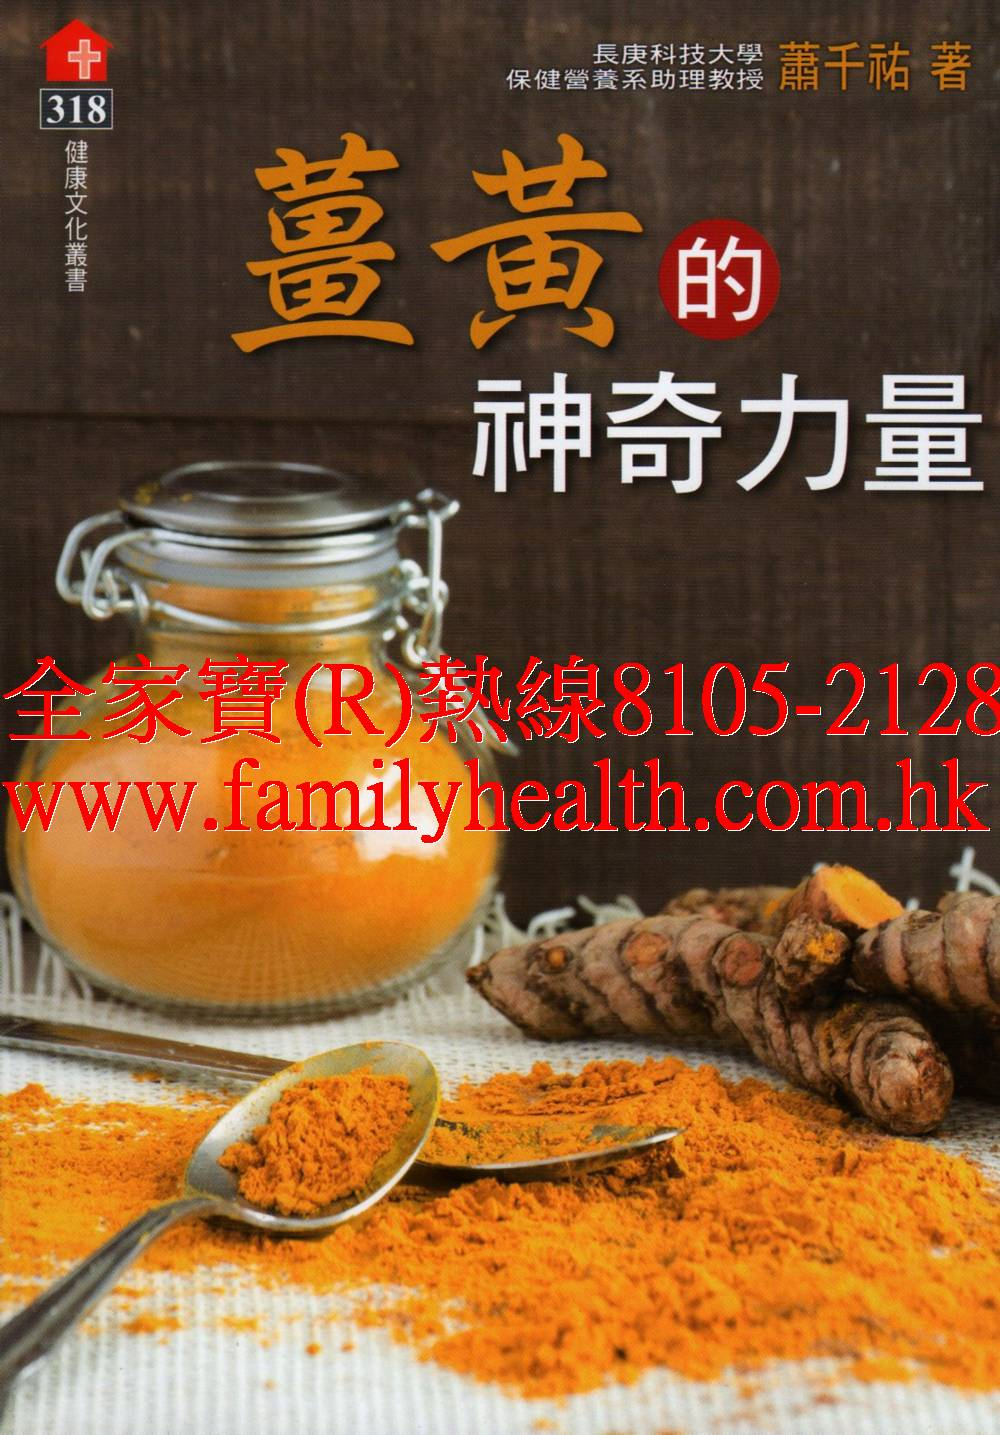 http://www.familyhealth.com.hk/files/full/971_0.jpg